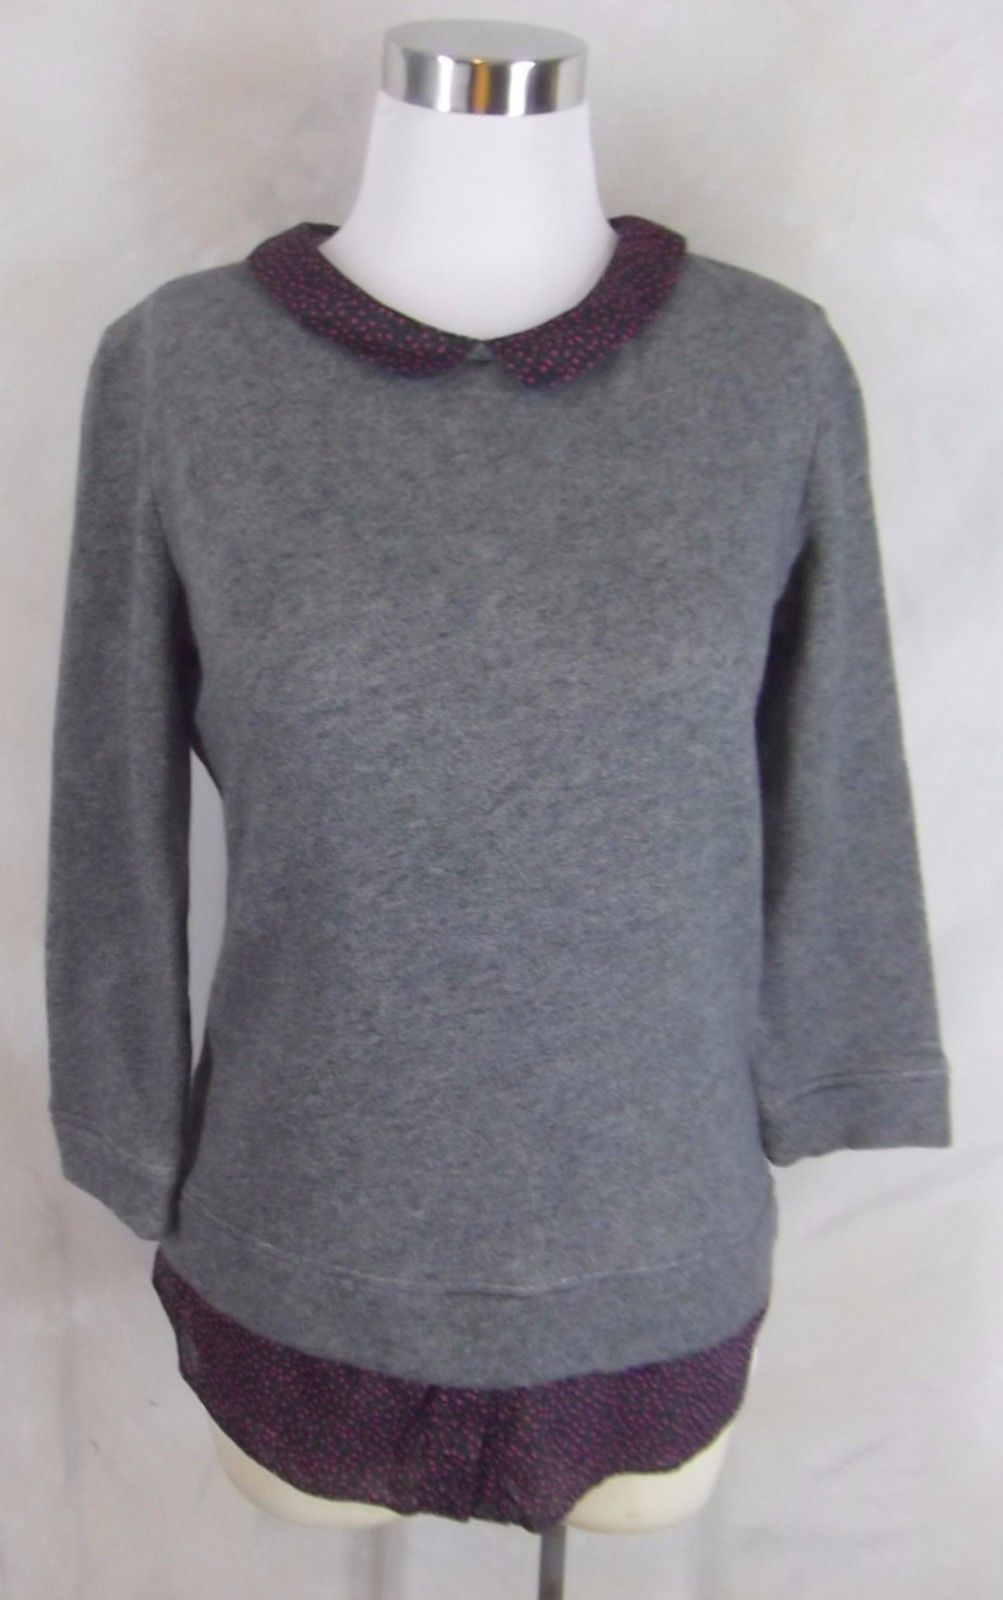 Ann Taylor Loft Collared Jersey Knit Shirt Top Small Gray Floral Trim 3/4 Sleeve